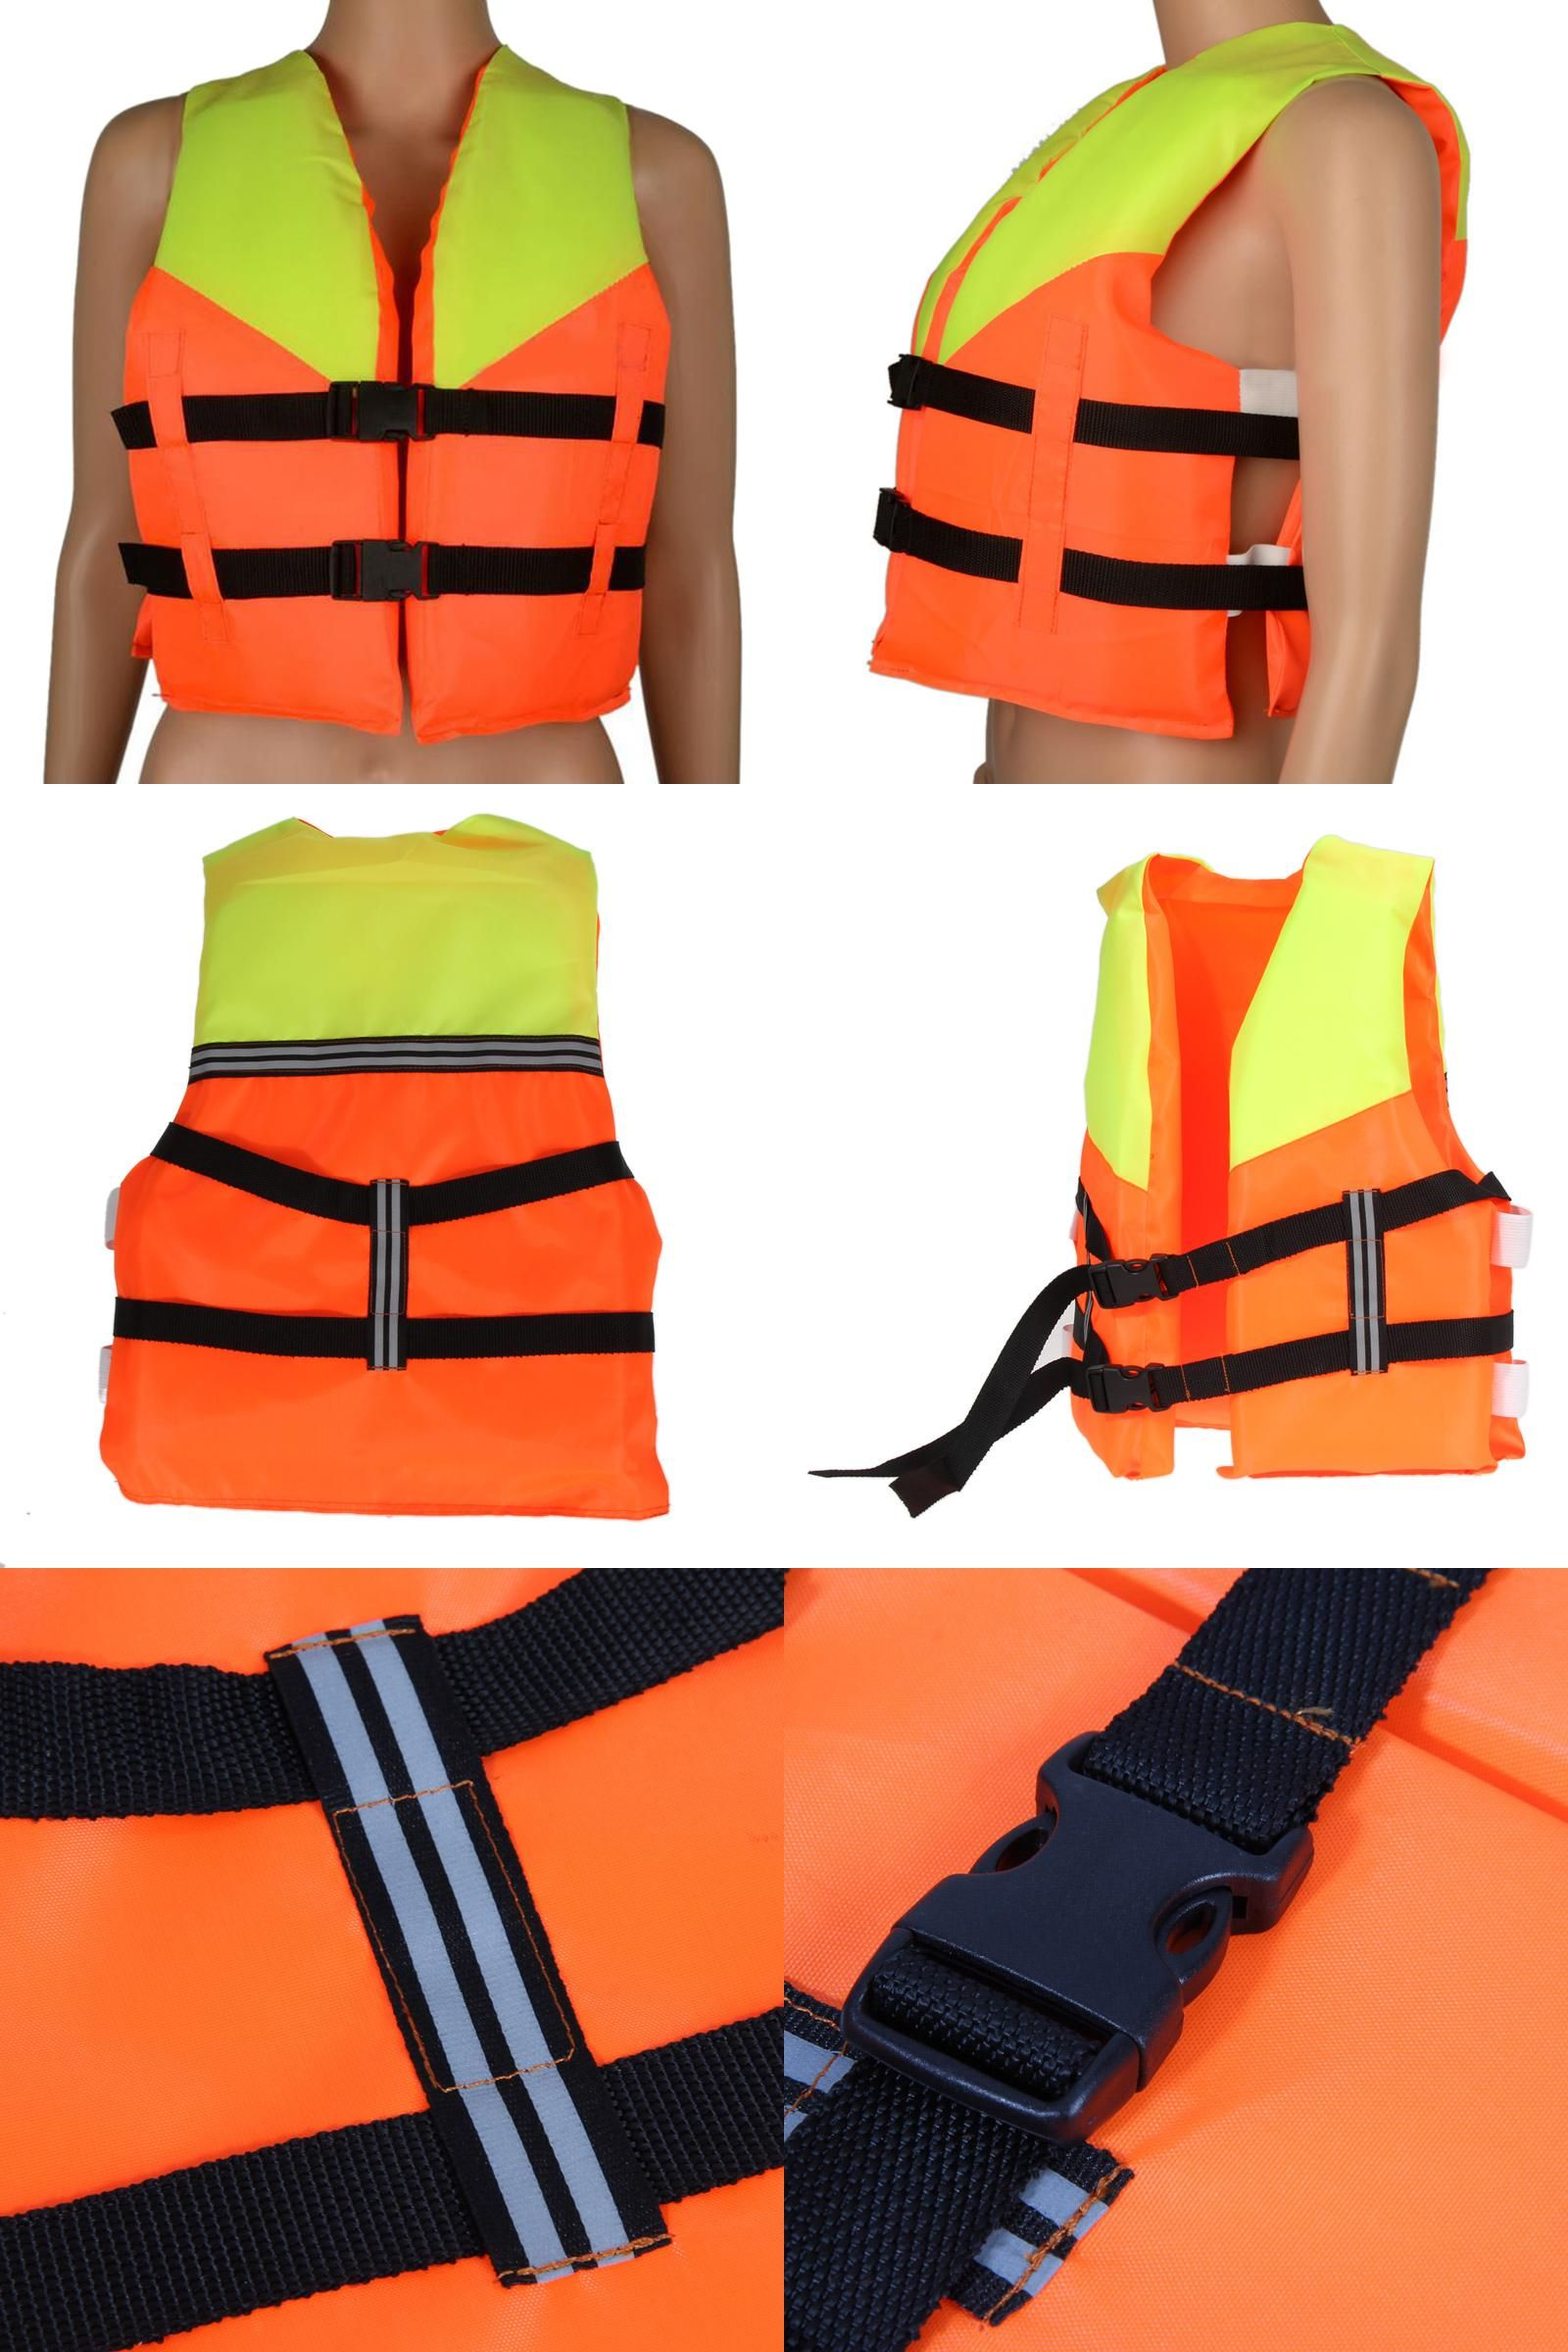 b9e074bd6 Visit to Buy  Child Water Sports Life Vest   Jackets Children s ...